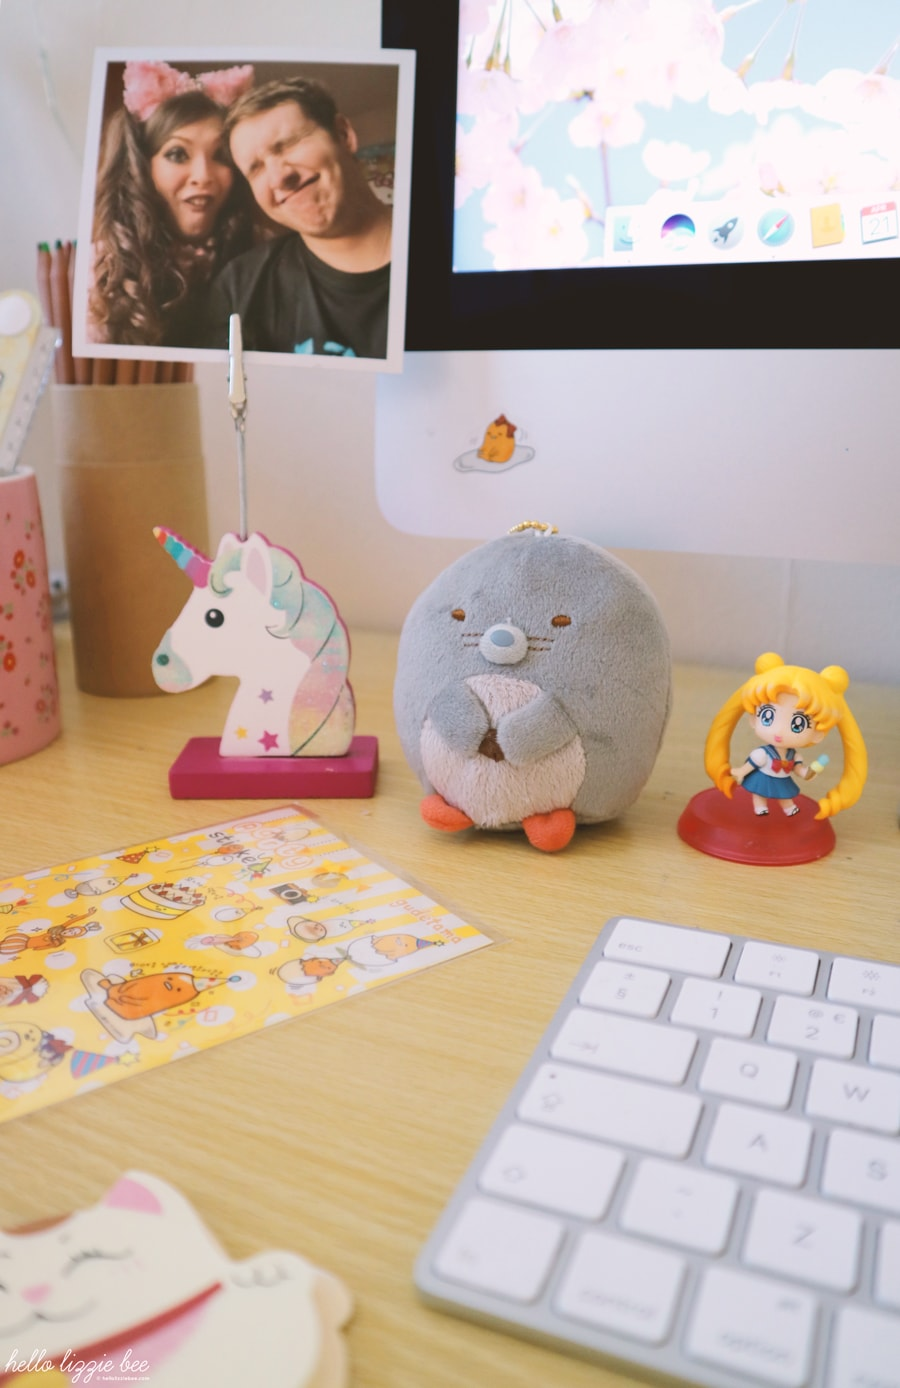 cute desk figurines